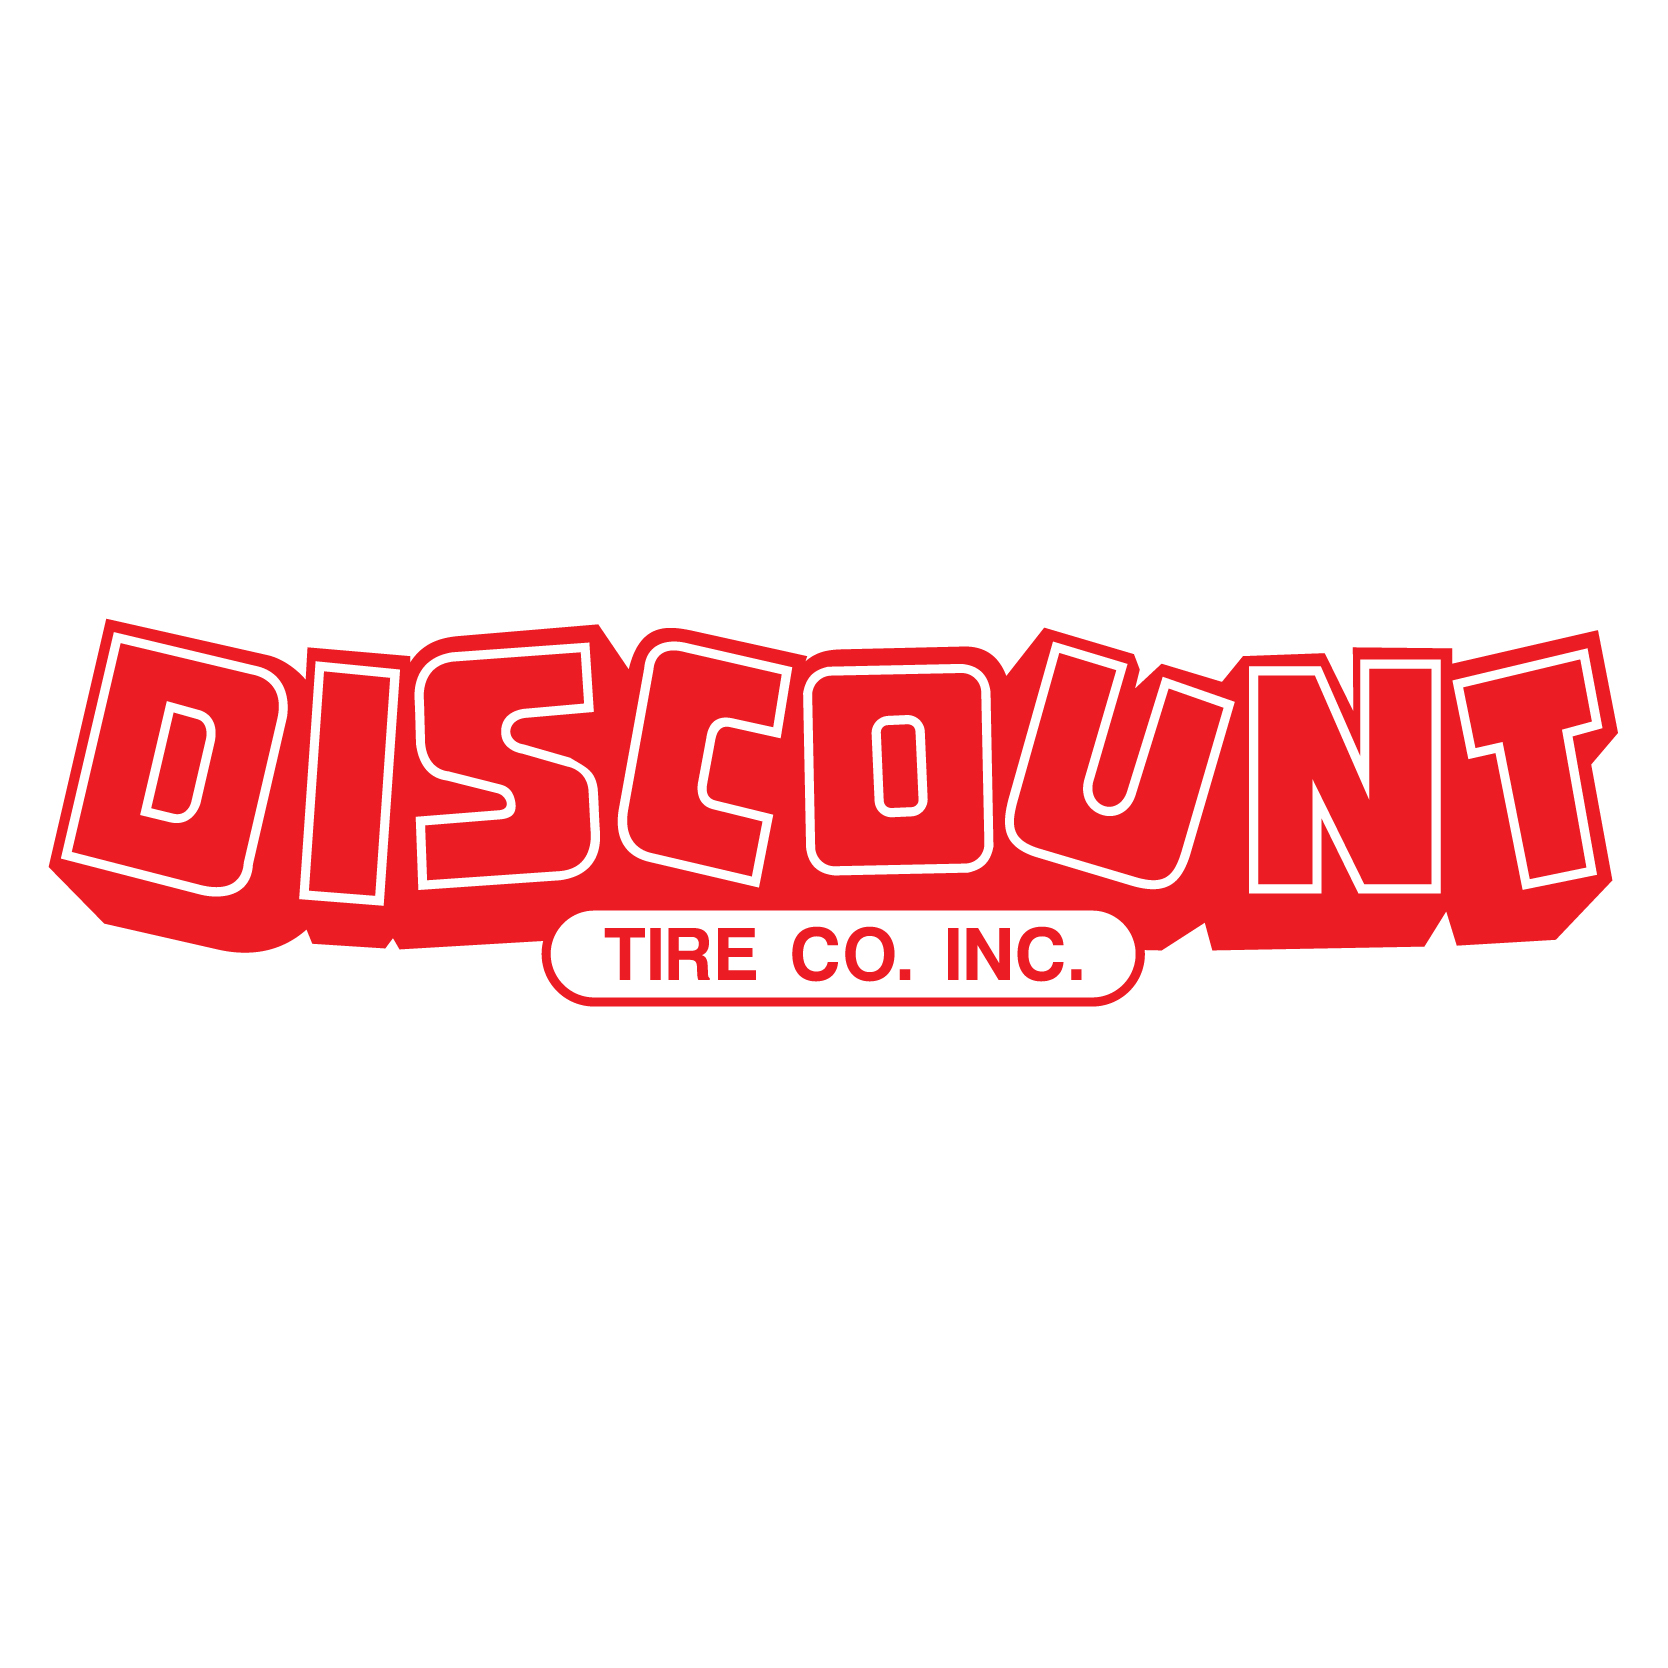 Discount Tire Co. Inc.